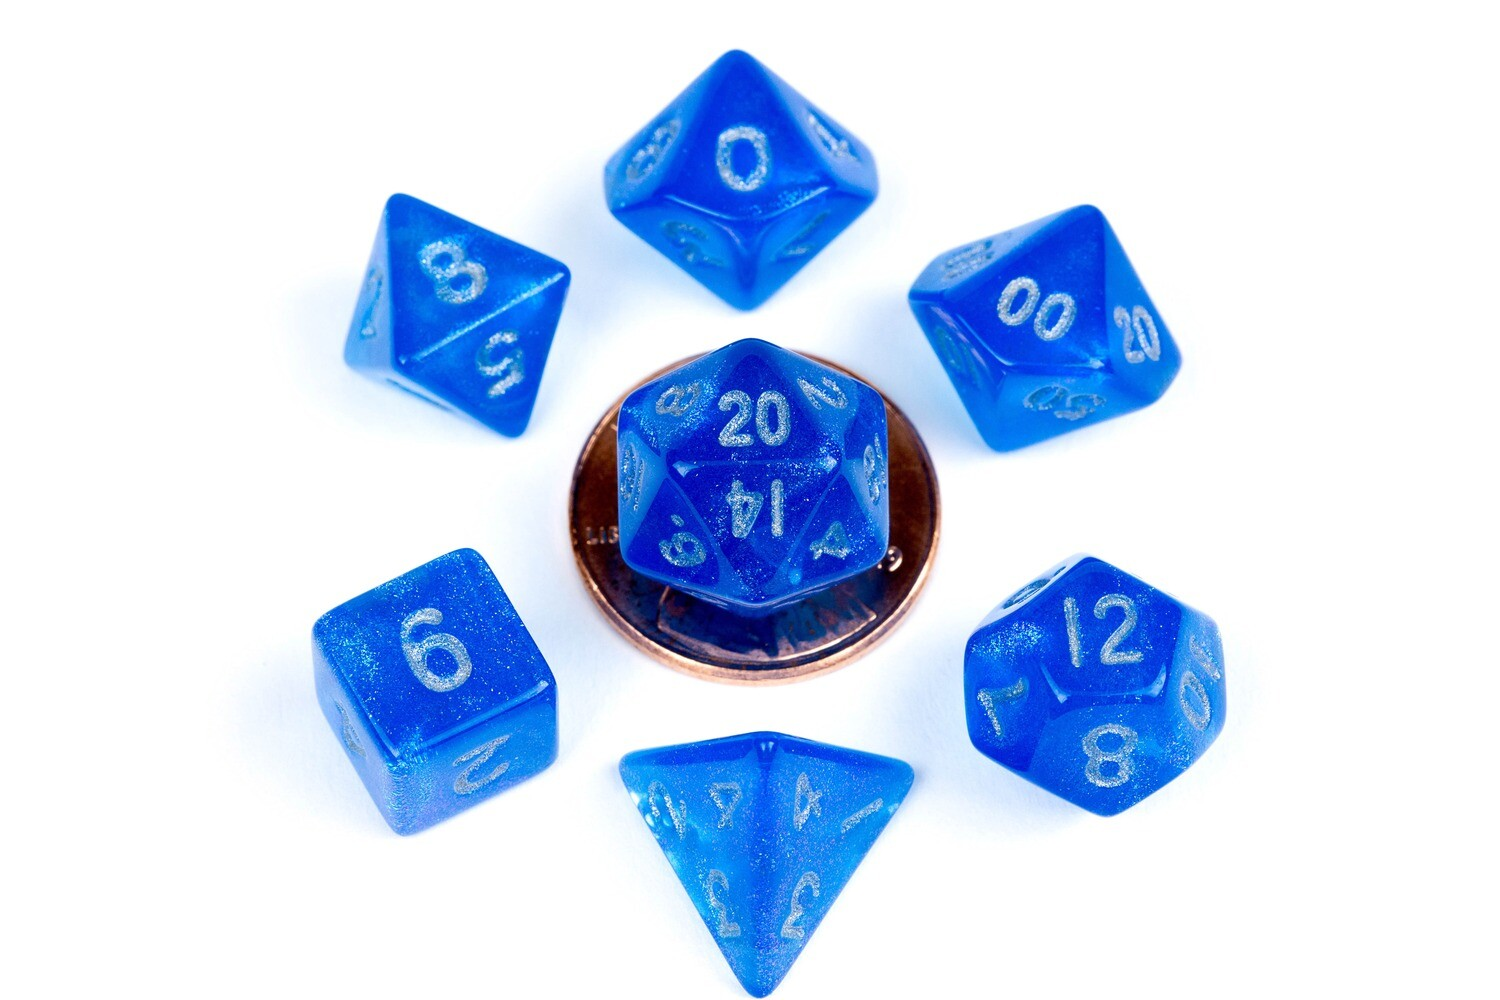 Stardust Blue with Silver 10mm Mini Poly Dice Set RPG Tabletop Gaming Roleplay